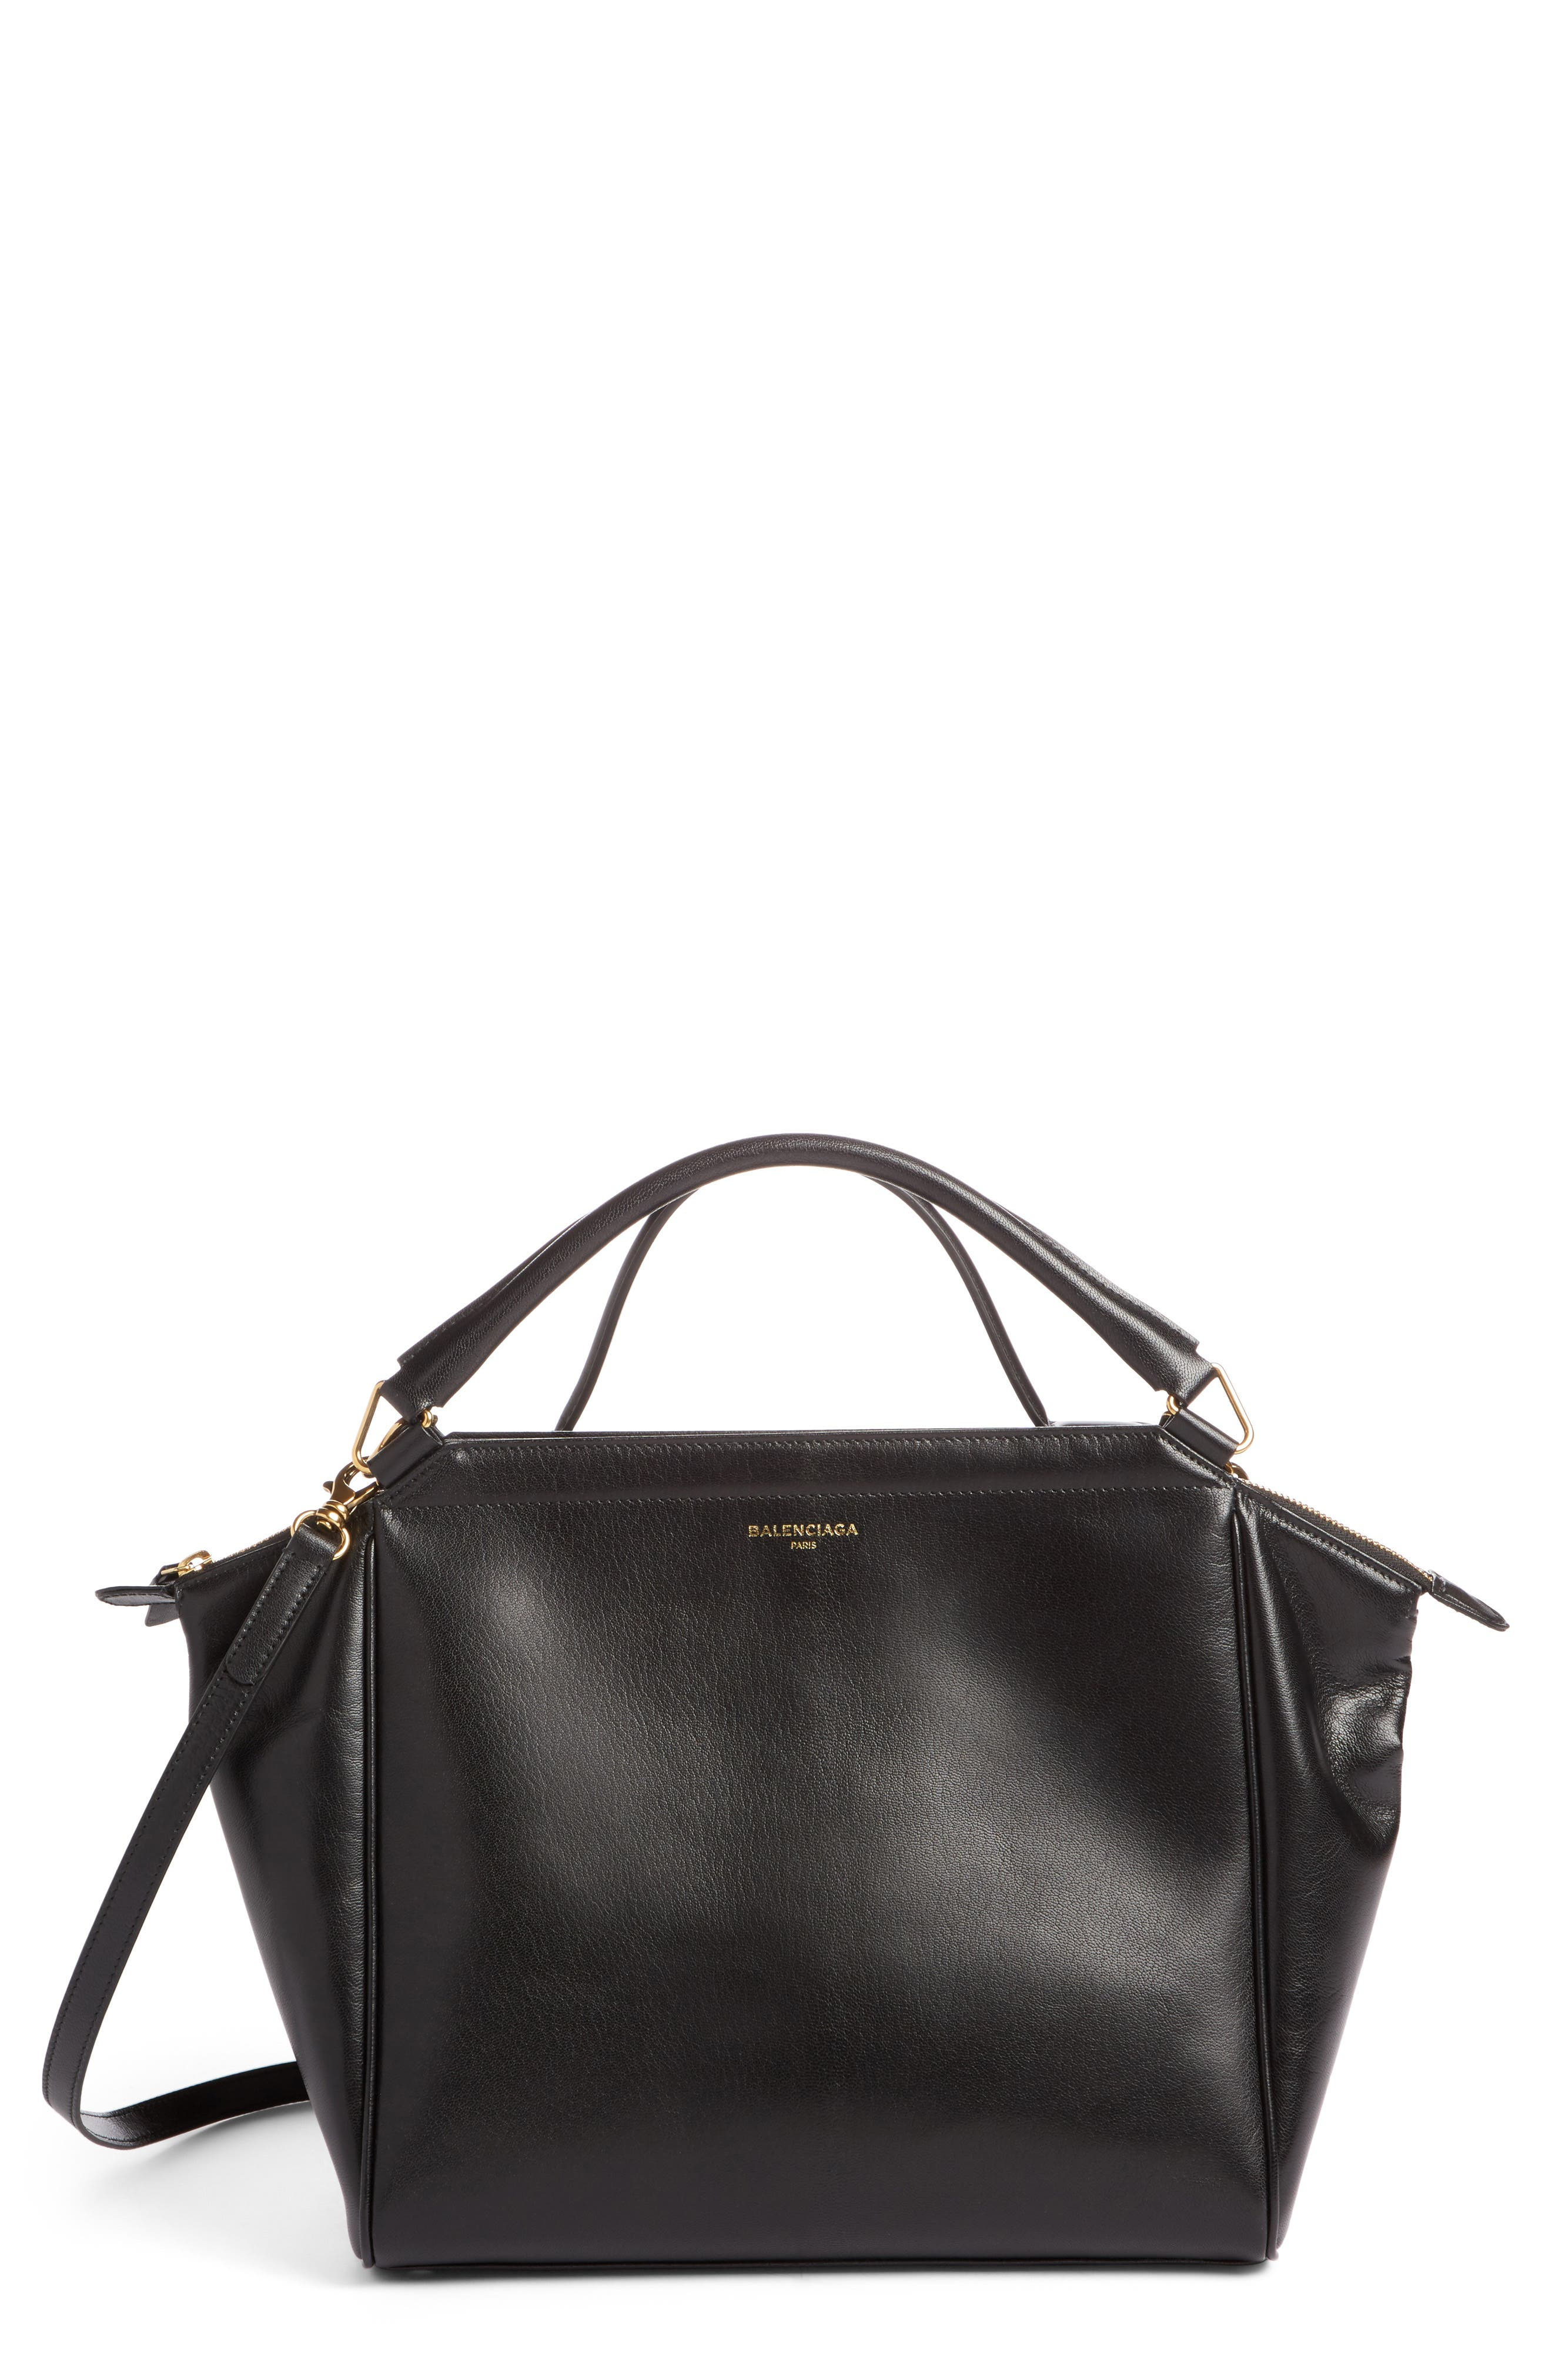 Collage Double Calfskin Leather Bag,                         Main,                         color, 001